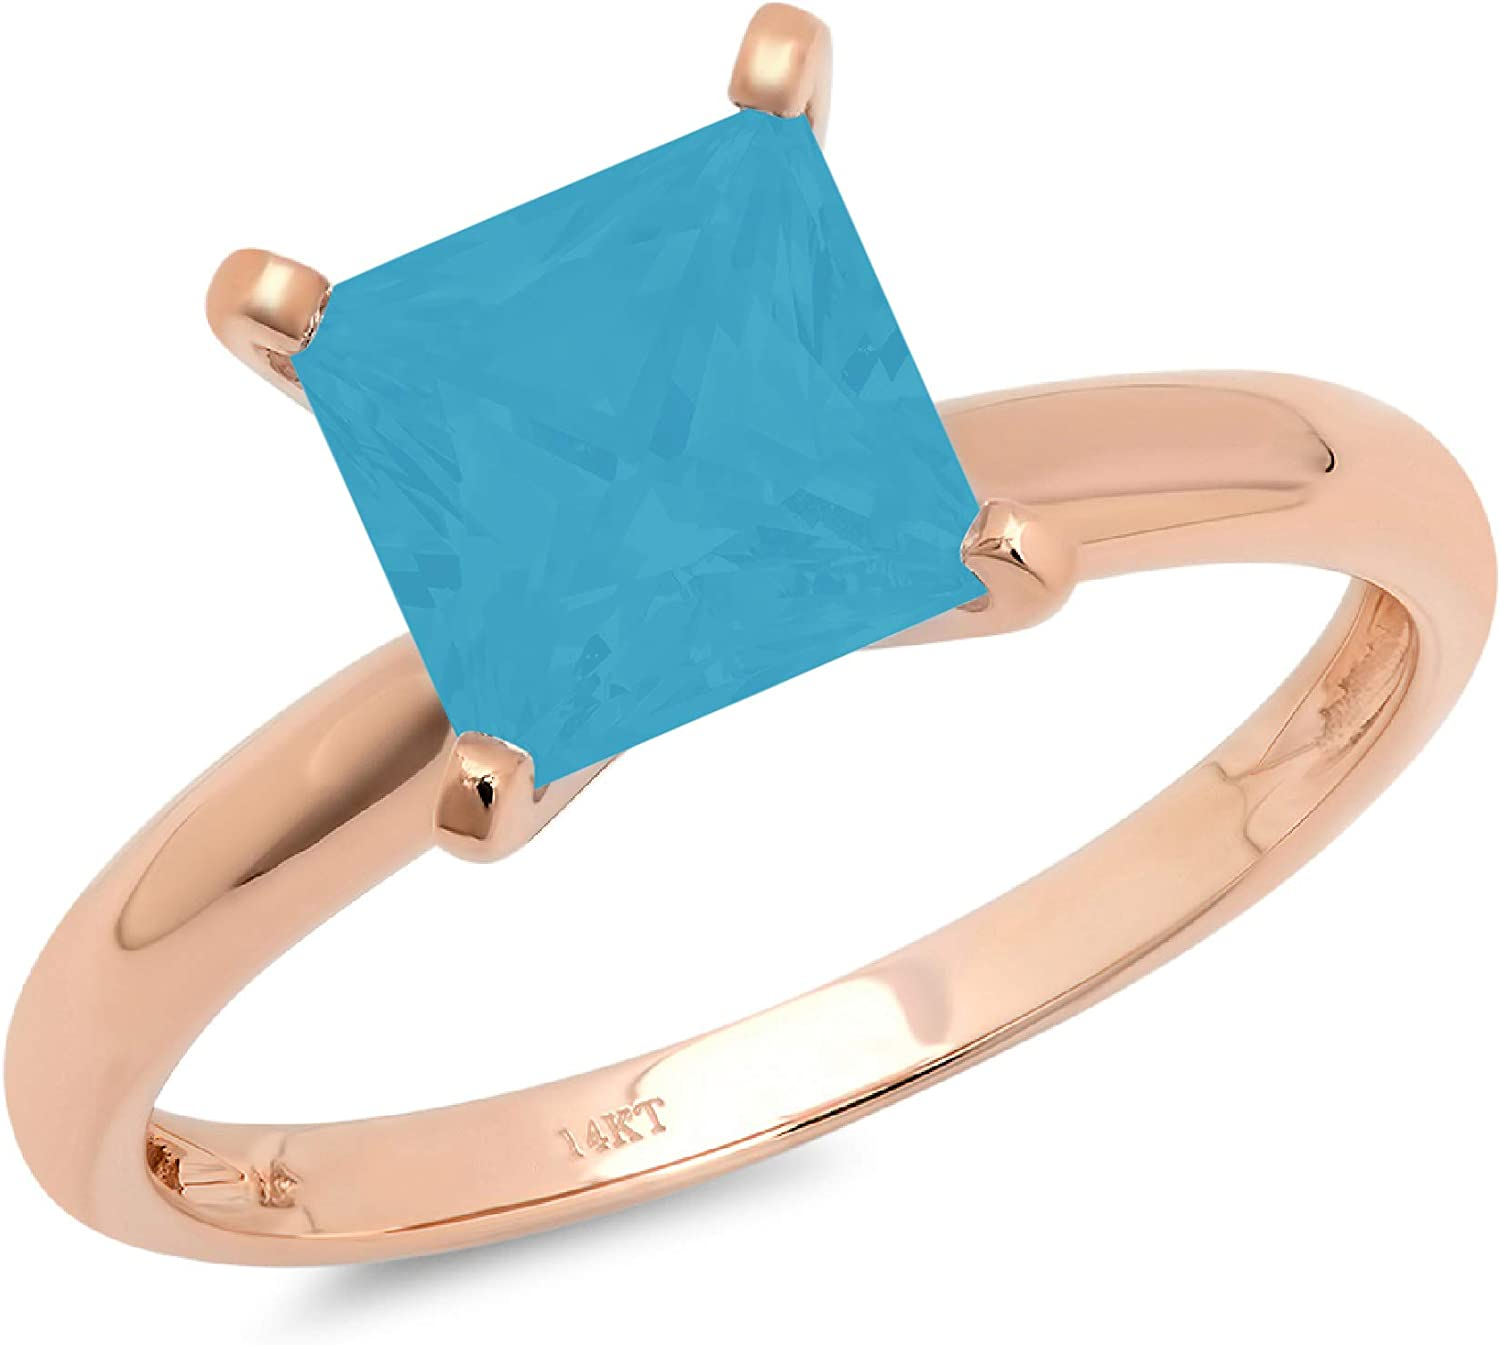 1.9ct Brilliant Princess Cut Solitaire Flawless Simulated Cubic Zirconia Blue Turquoise Ideal 4-Prong Engagement Wedding Bridal Promise Anniversary Designer Ring Solid 14k Rose Gold for Women